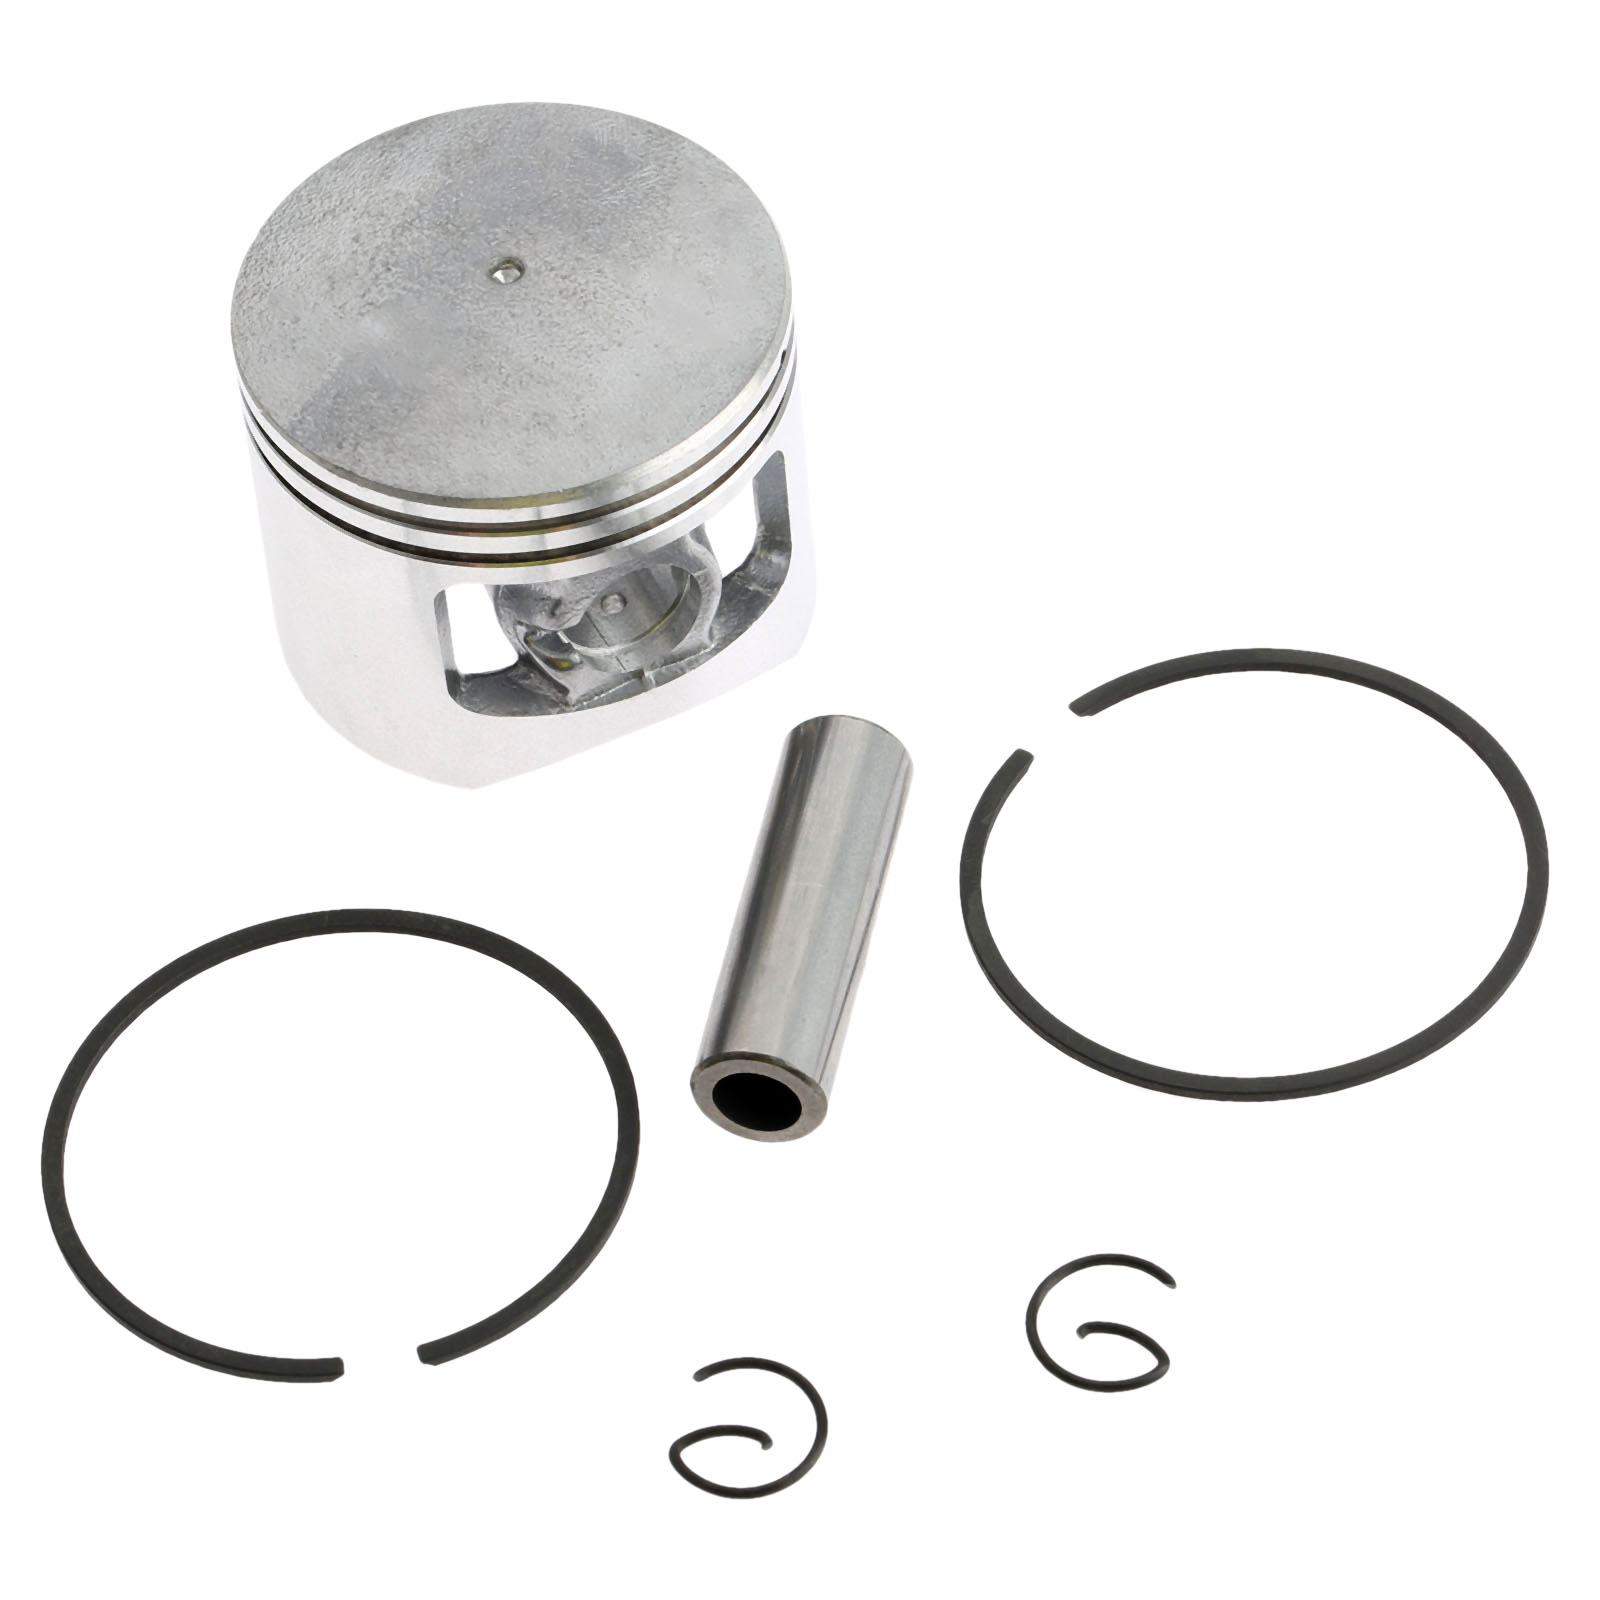 45mm Piston Kit Garden Tool Parts 5200 Chainsaw Piston Assy Set with Ring and Pin for STIHL 018 MS180 CHAINSAW Spare Parts New quanchai qc4102t52 parts the set of piston and piston rings part number 4102qa 03001